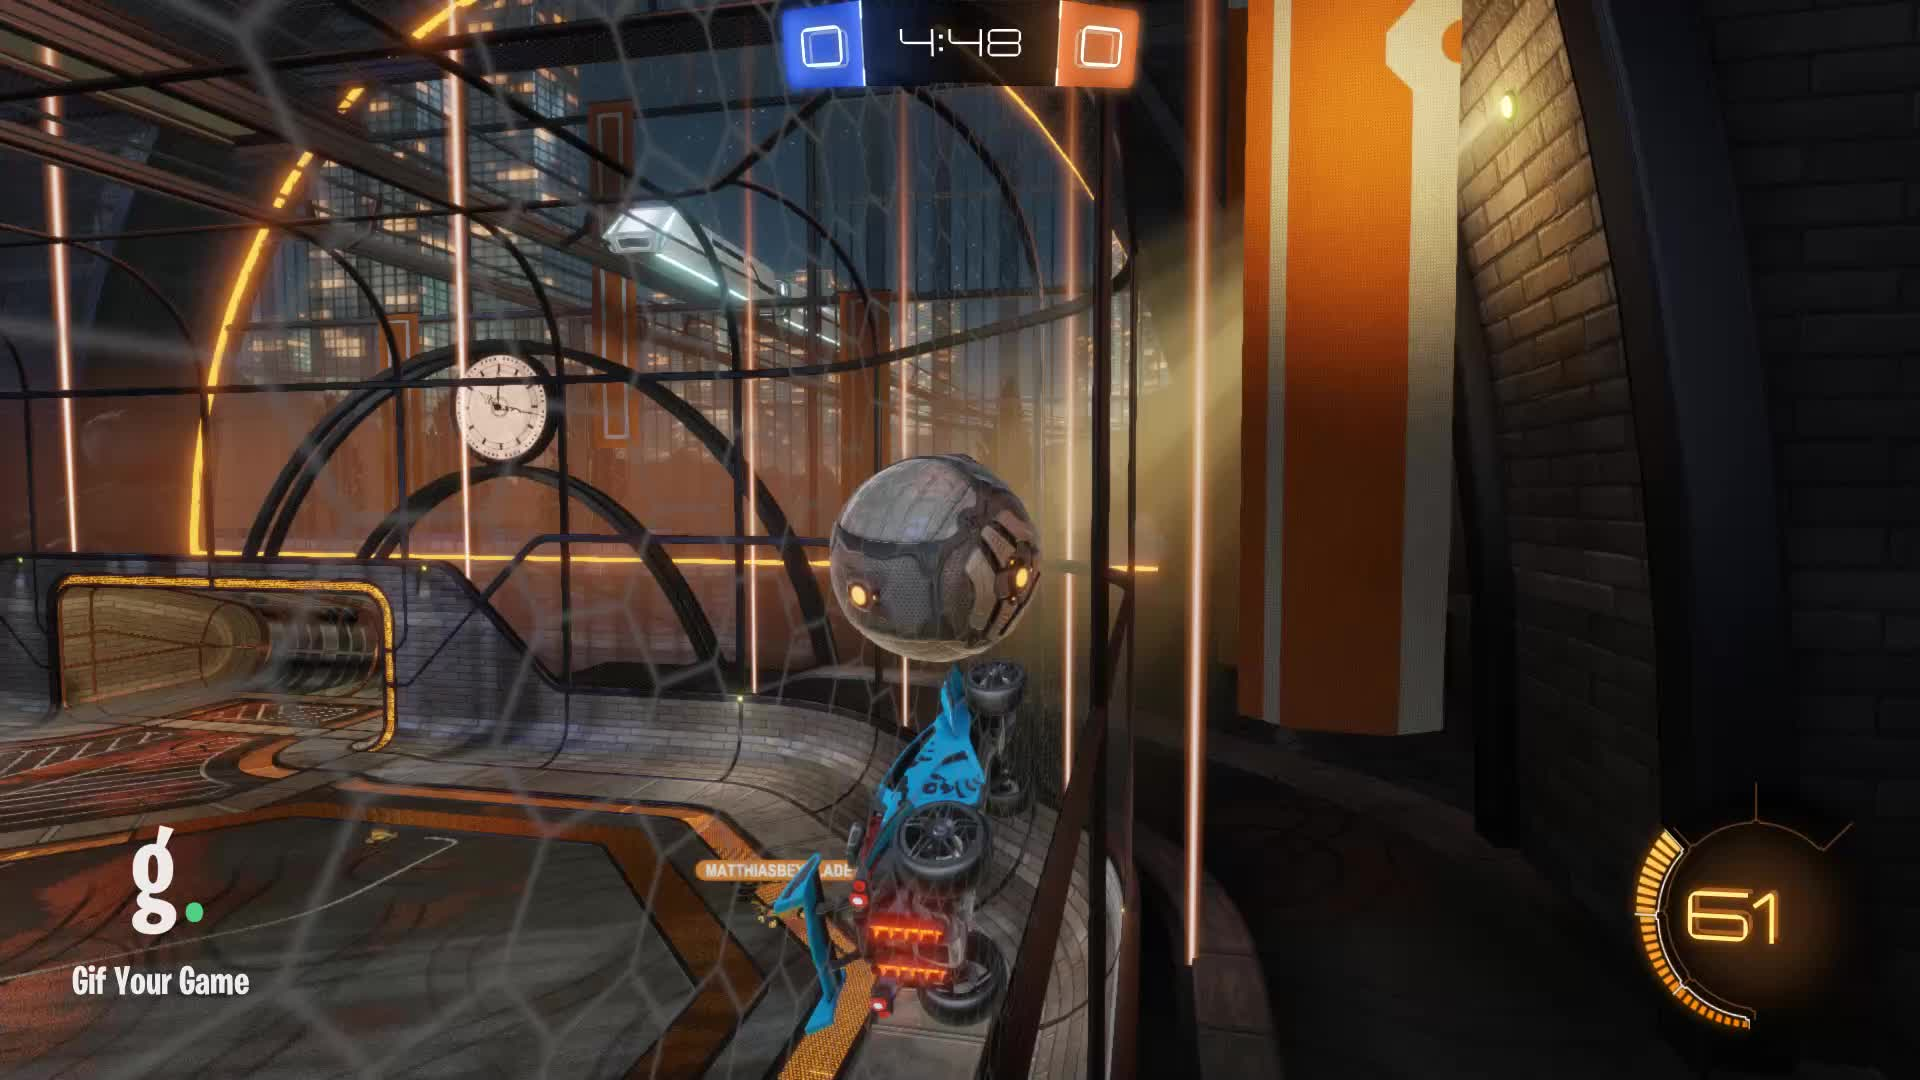 Gif Your Game, GifYourGame, Rocket League, RocketLeague, datboi | CLS, Goal 1: datboi | CLS GIFs